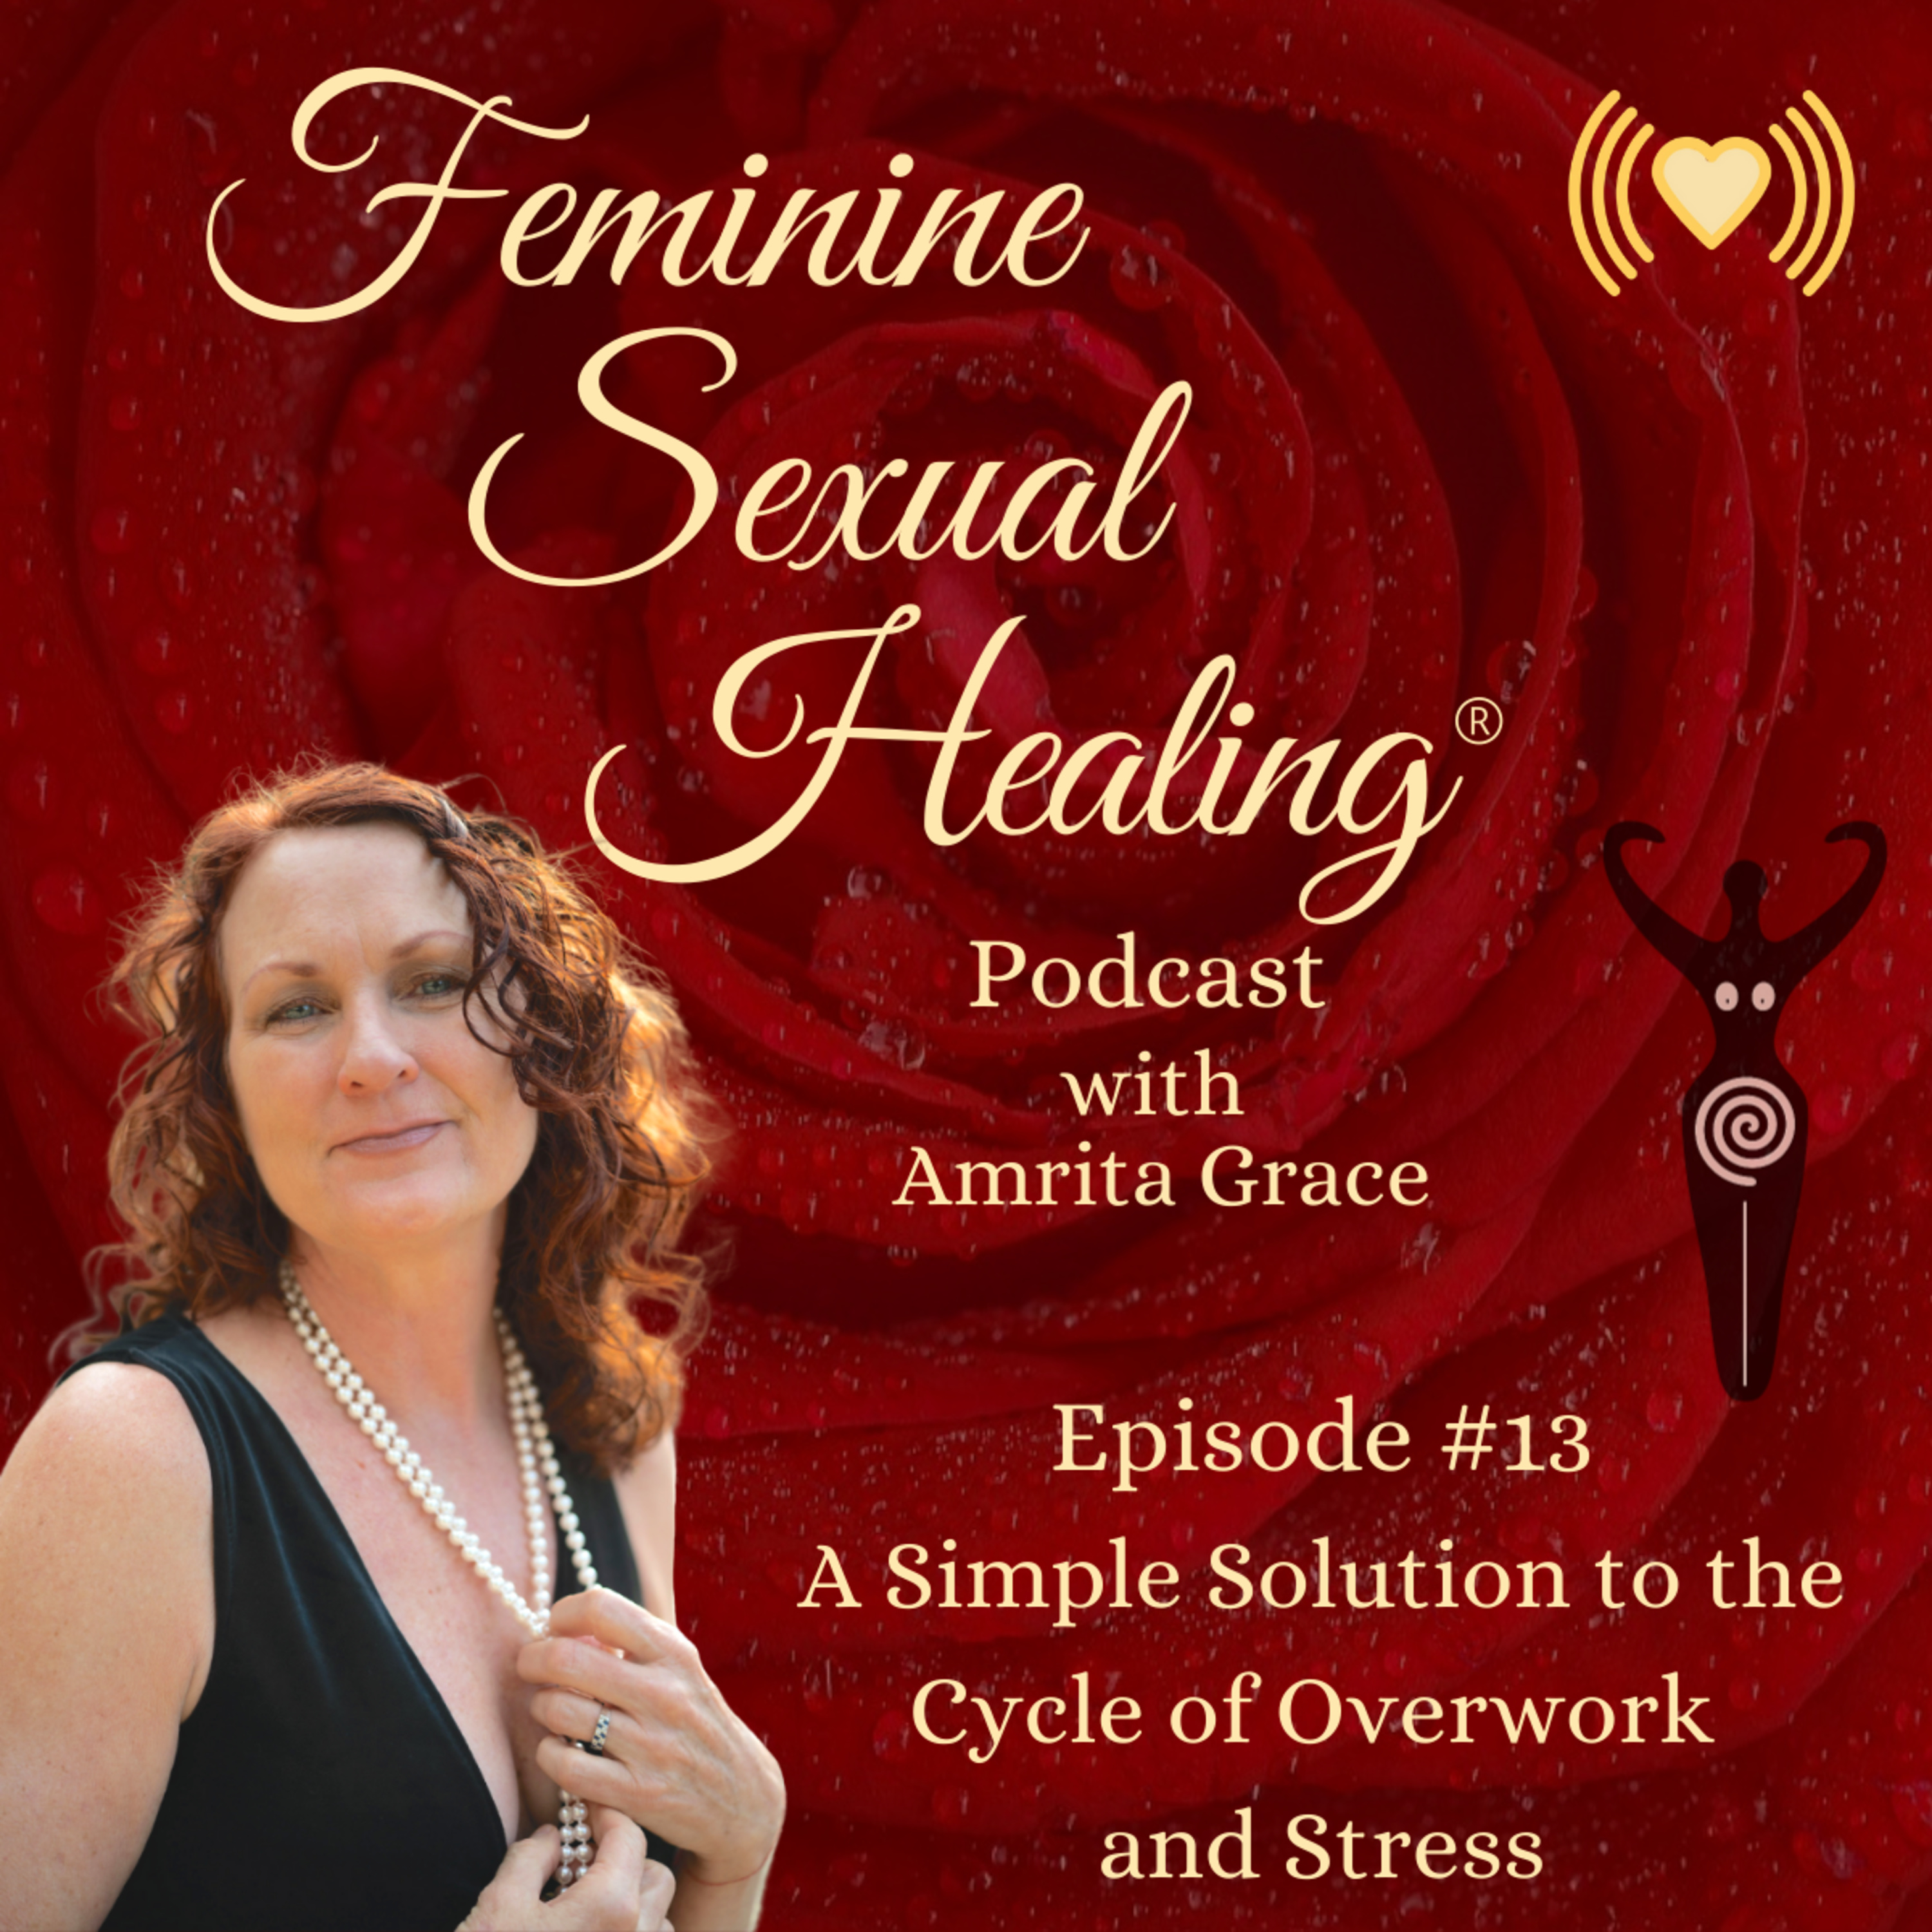 Episode #9 A Simple Solution to the Cycle of Overwork and Stress